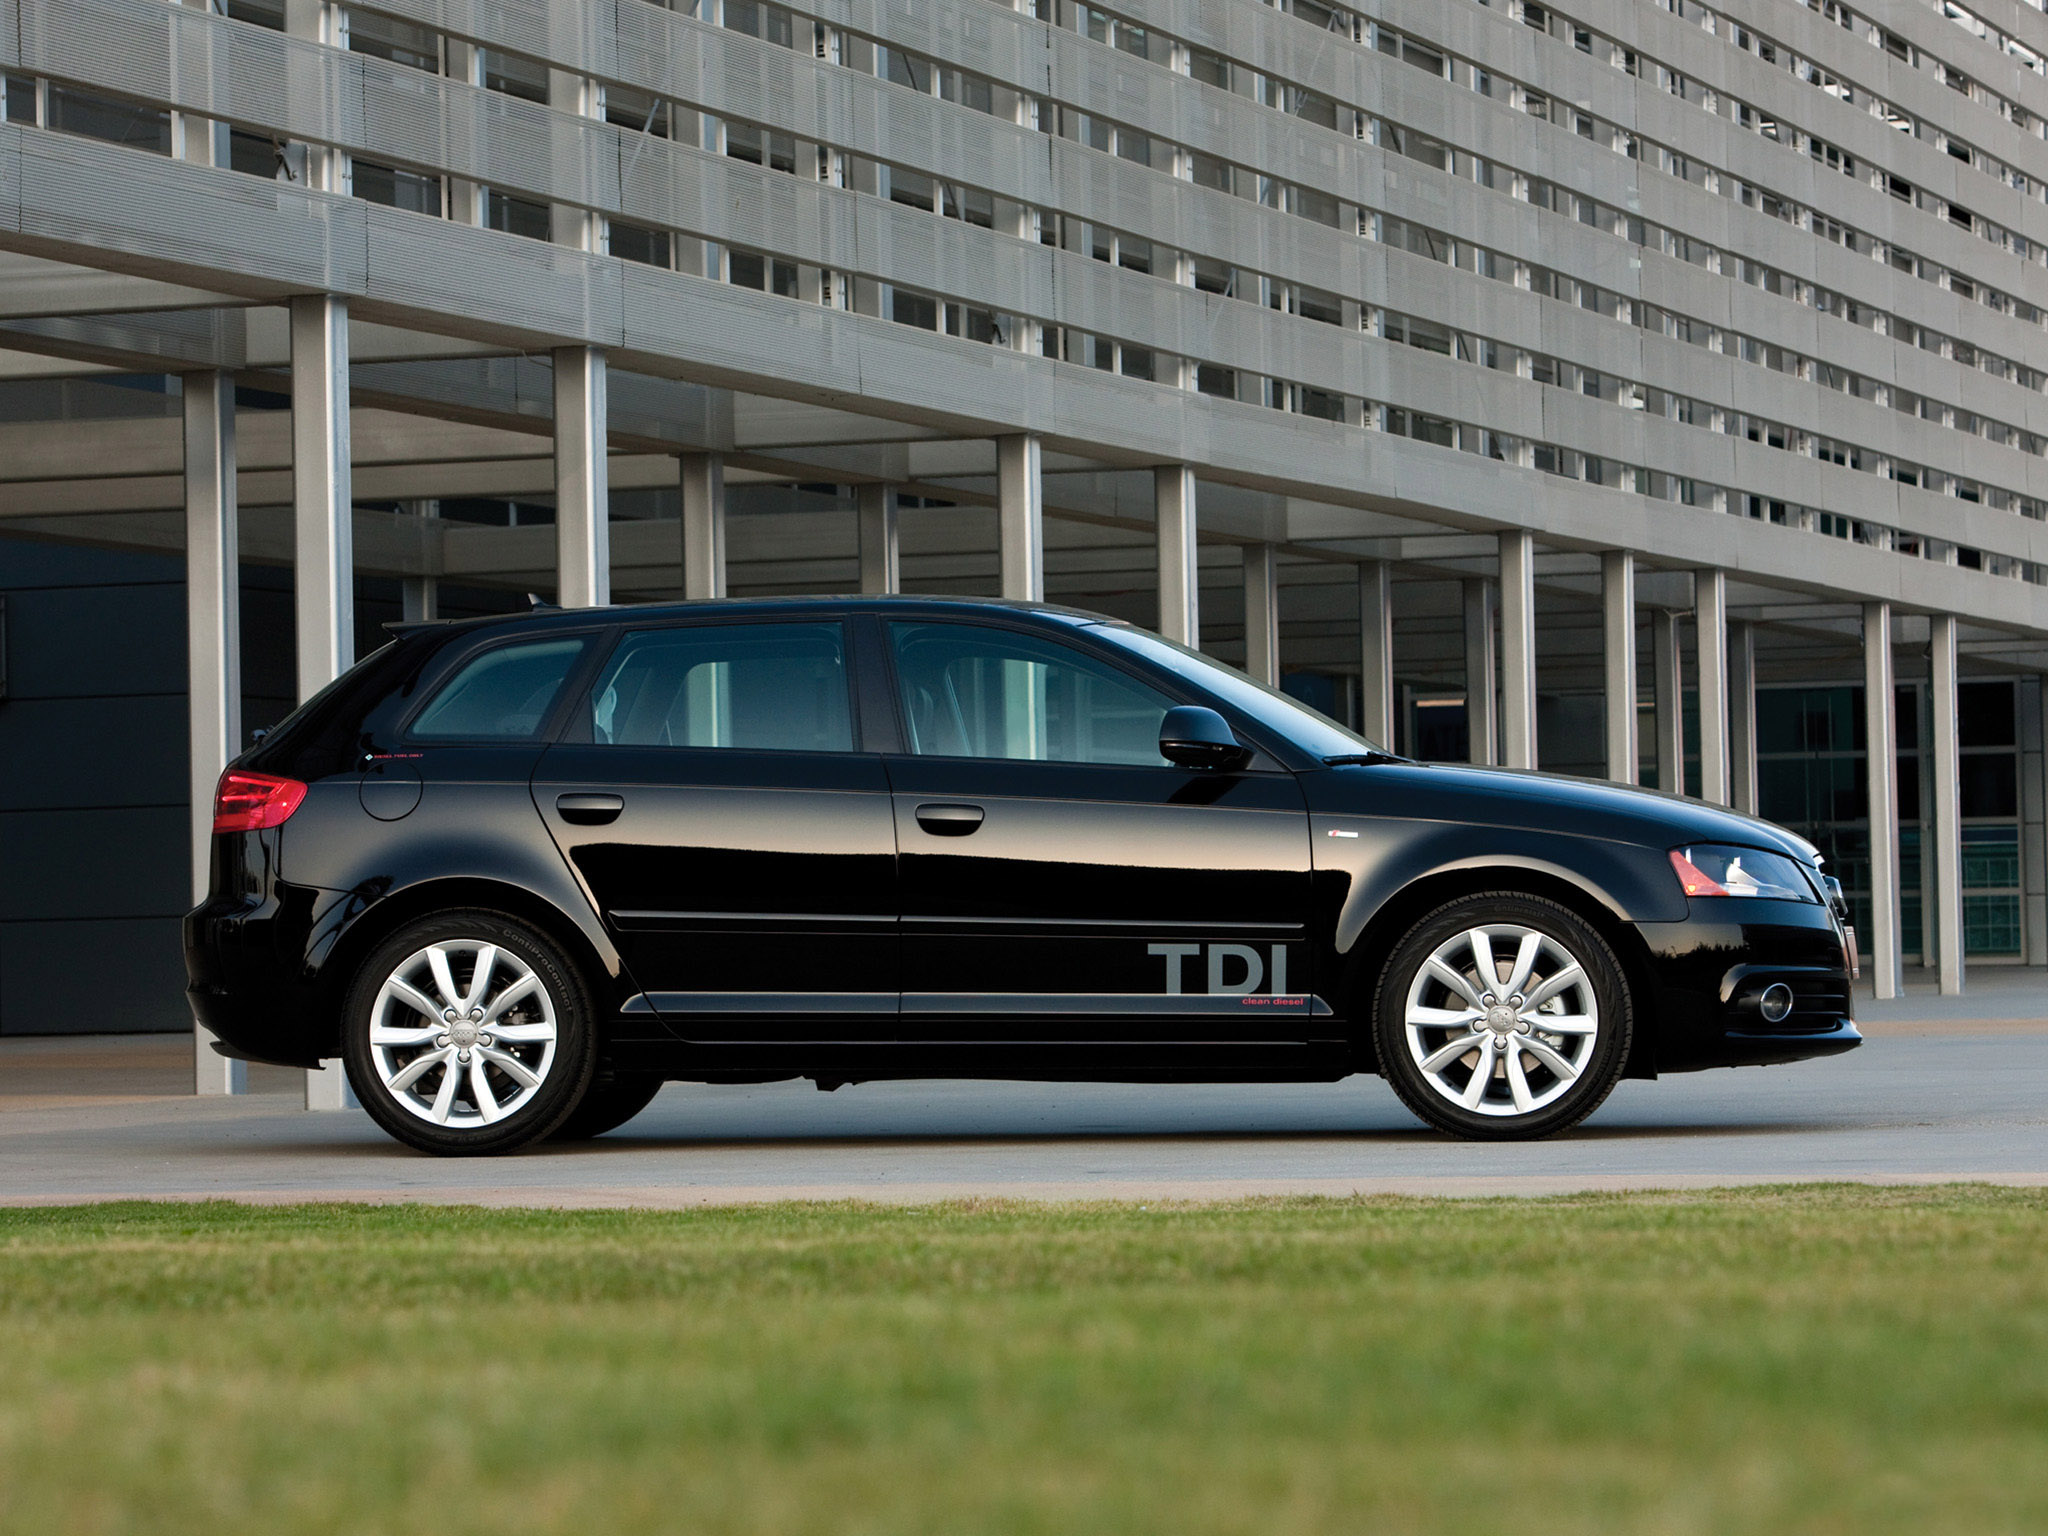 audi a3 sportback tdi clean diesel 8pa 2009 audi a3 sportback tdi clean diesel 8pa 2009 photo 05. Black Bedroom Furniture Sets. Home Design Ideas